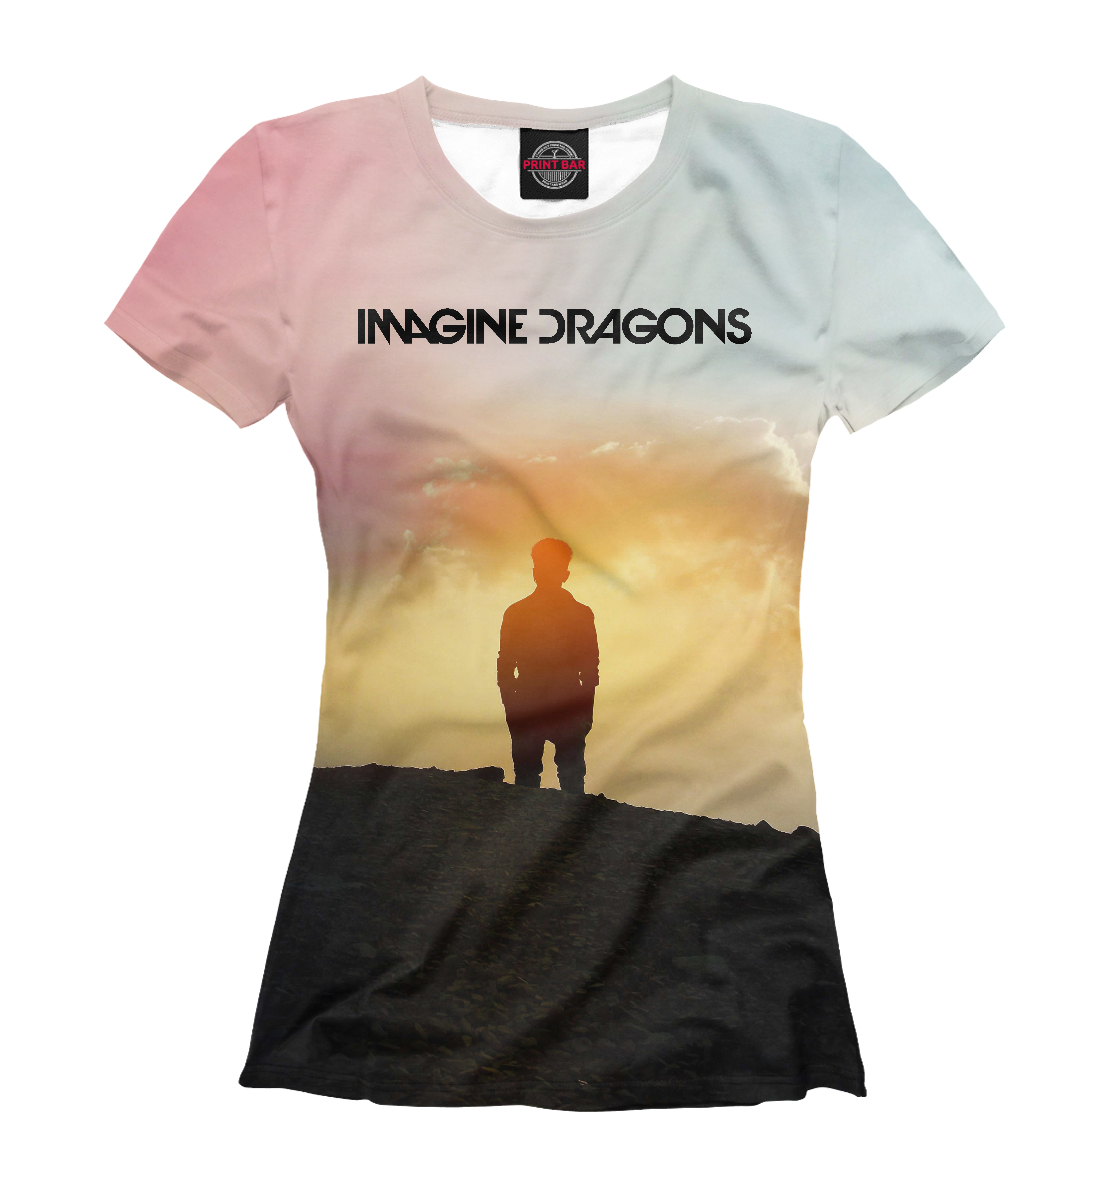 Купить Imagine Dragons, Printbar, Футболки, IMA-959016-fut-1